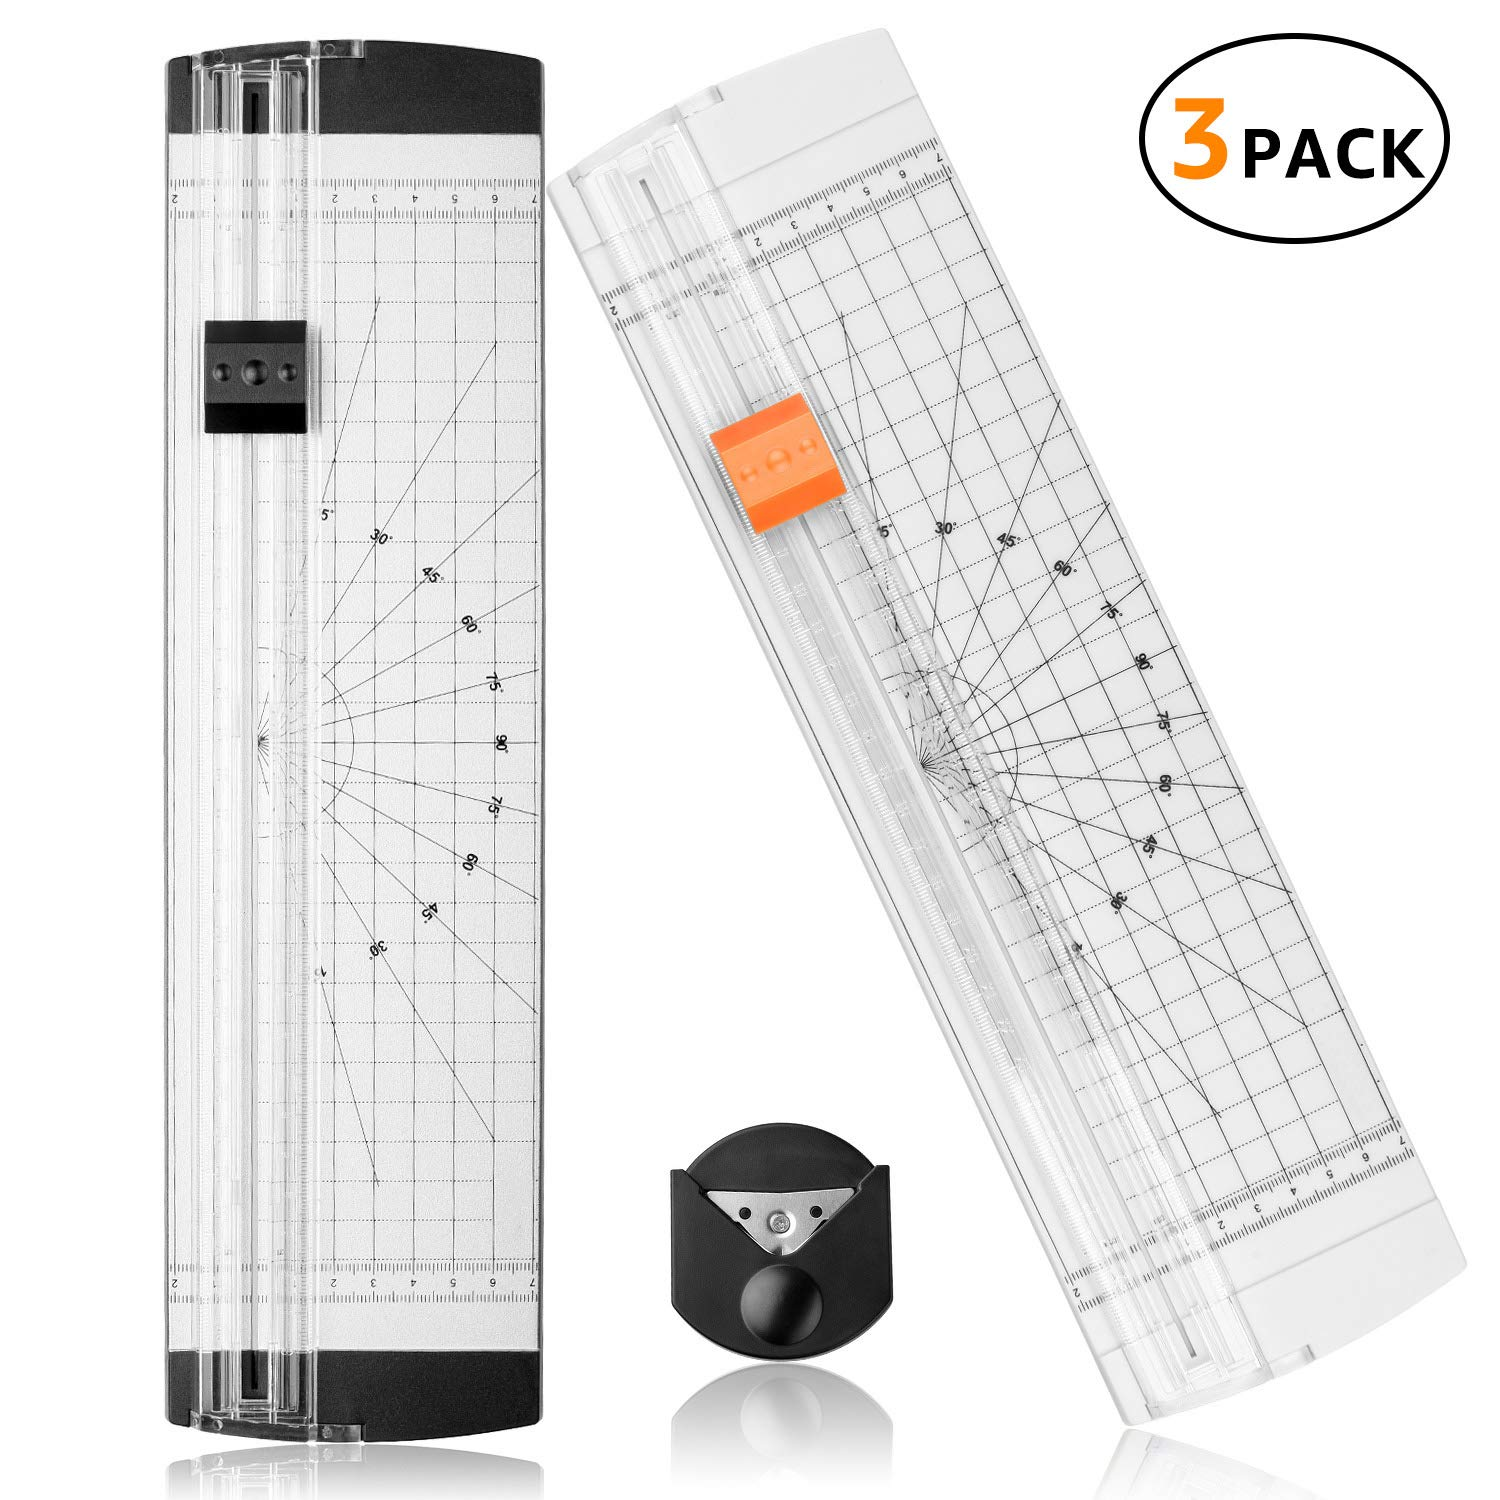 A4 Paper Cutter 12 Inch Titanium Paper Trimmer with Round Corner and Side Ruler for Craft Paper, Photo and Label (3 Packs, White and Black)